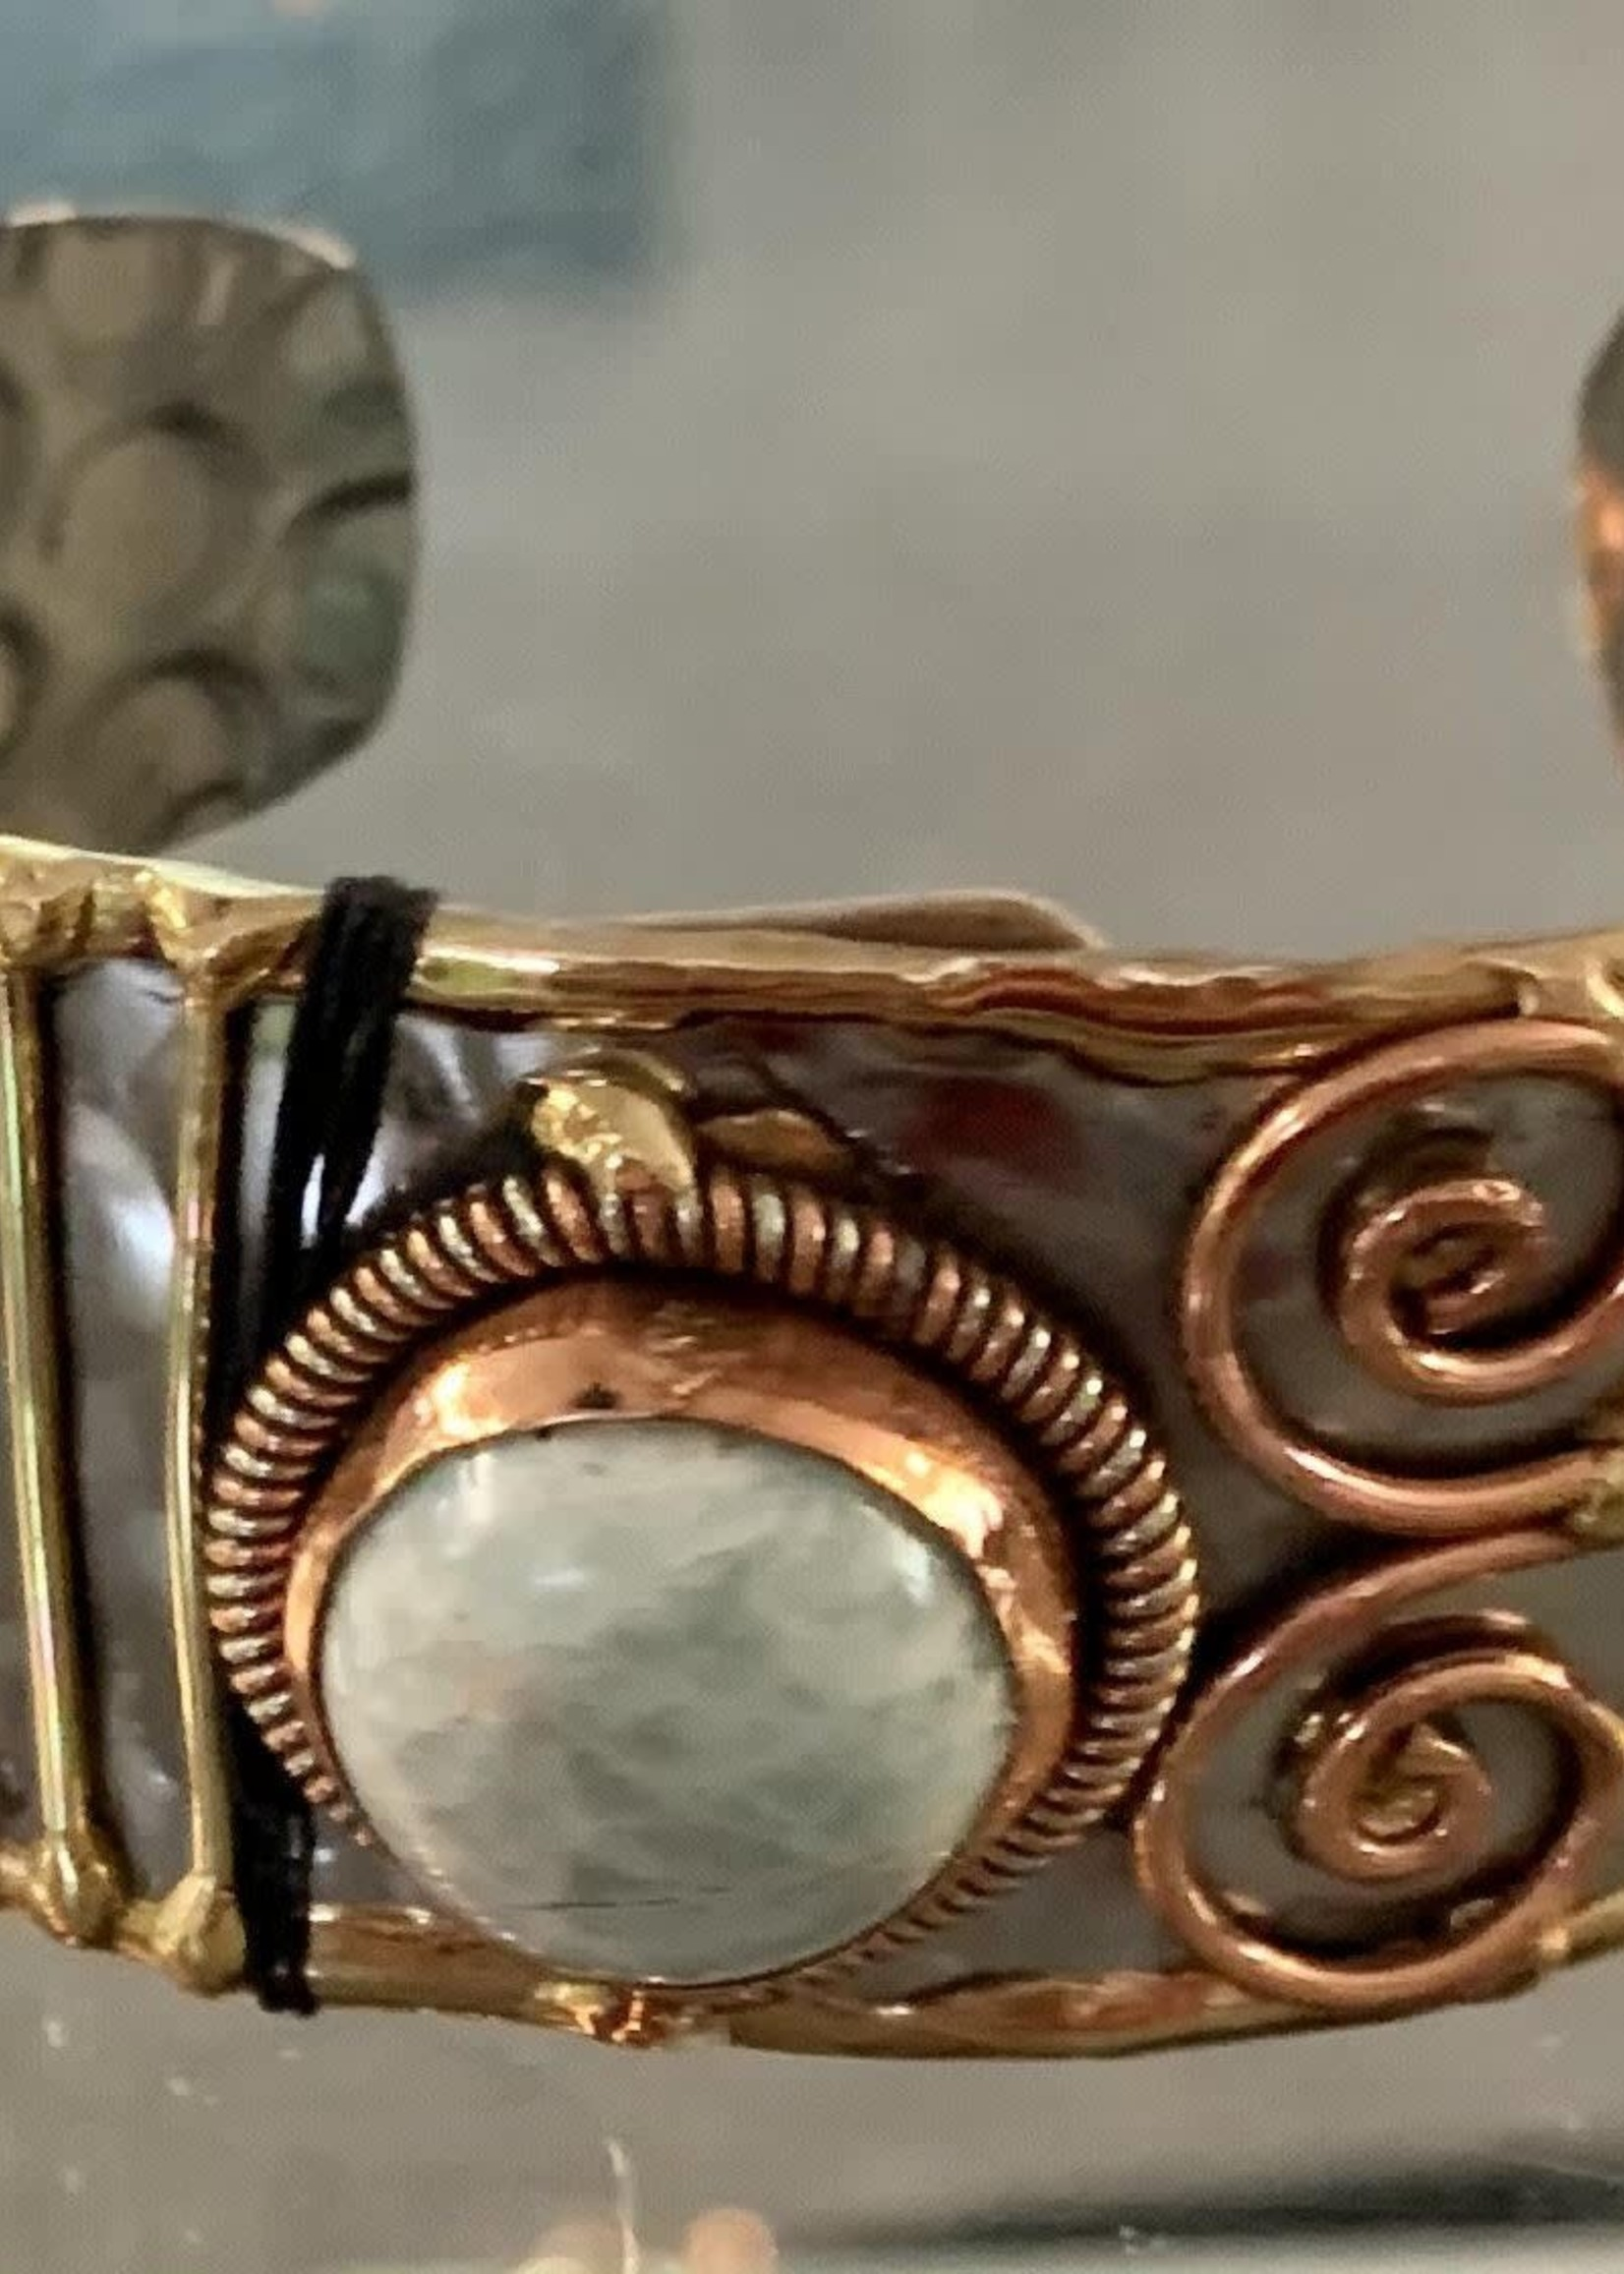 Hand-crafted Mixed Metal and Semi Precious Stone Cuff Bracelet Assortment